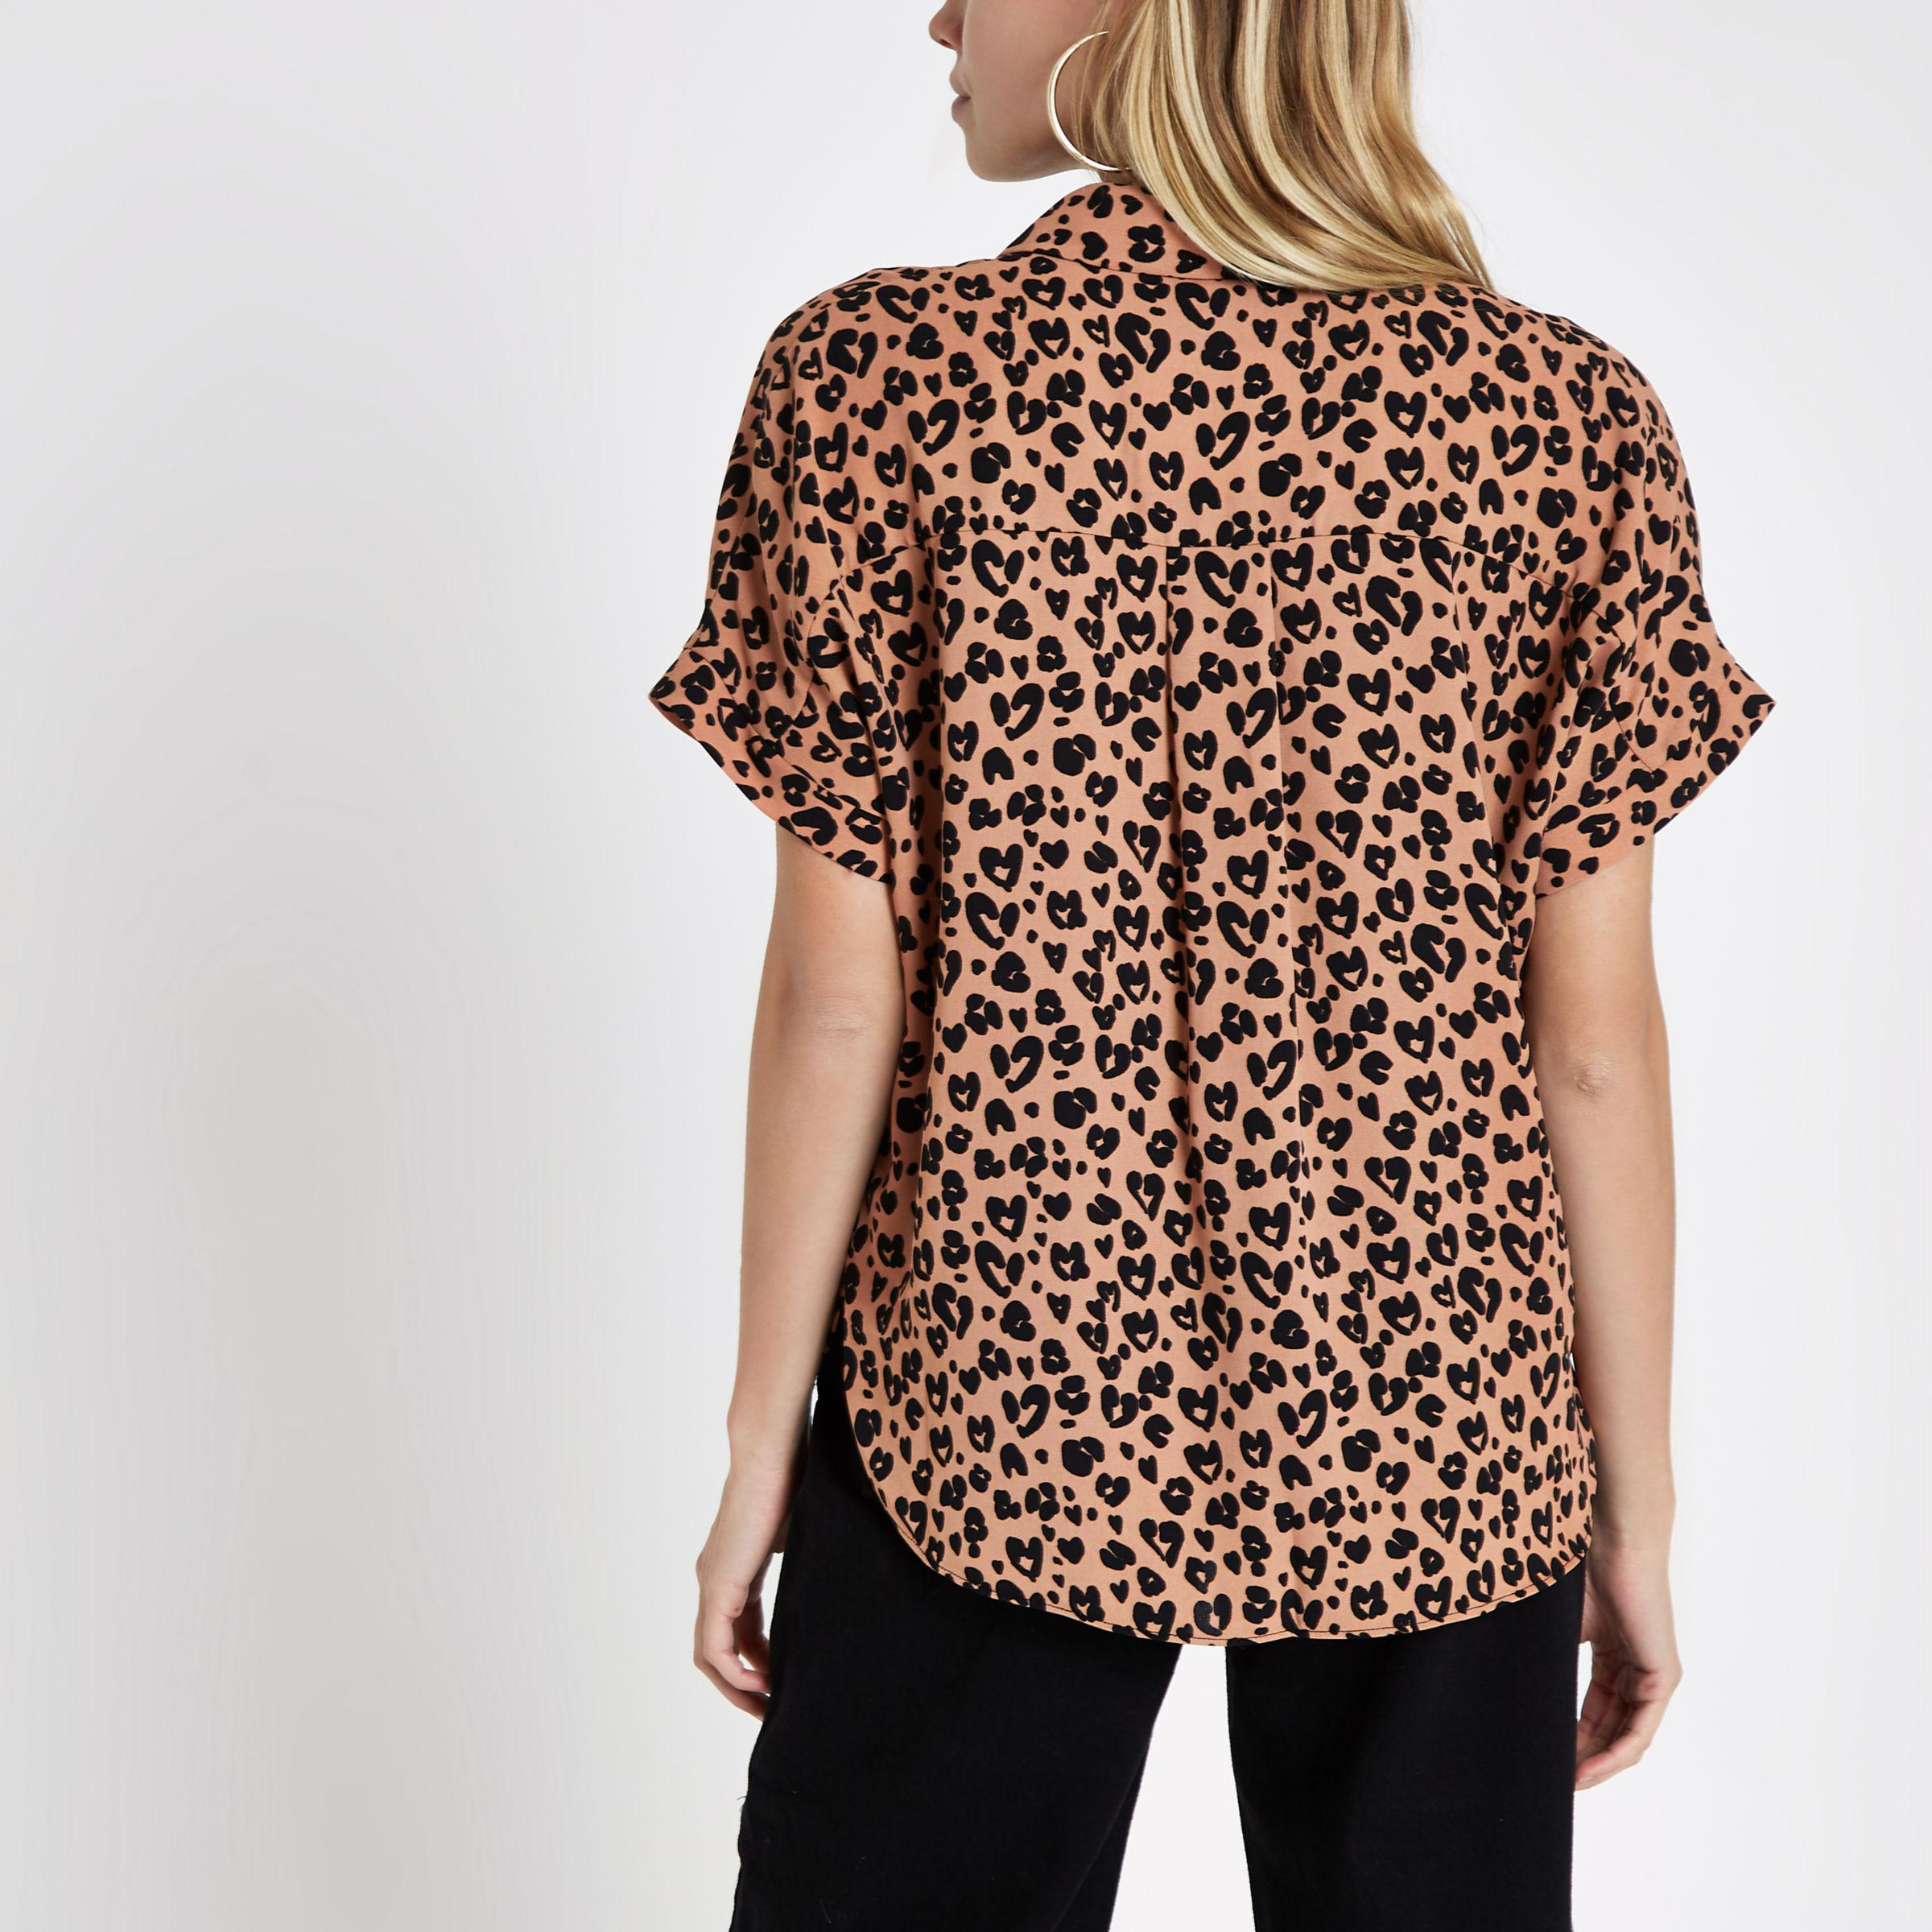 d2bff566a3137 Lyst - River Island Leopard Print Tie Front Shirt in Brown